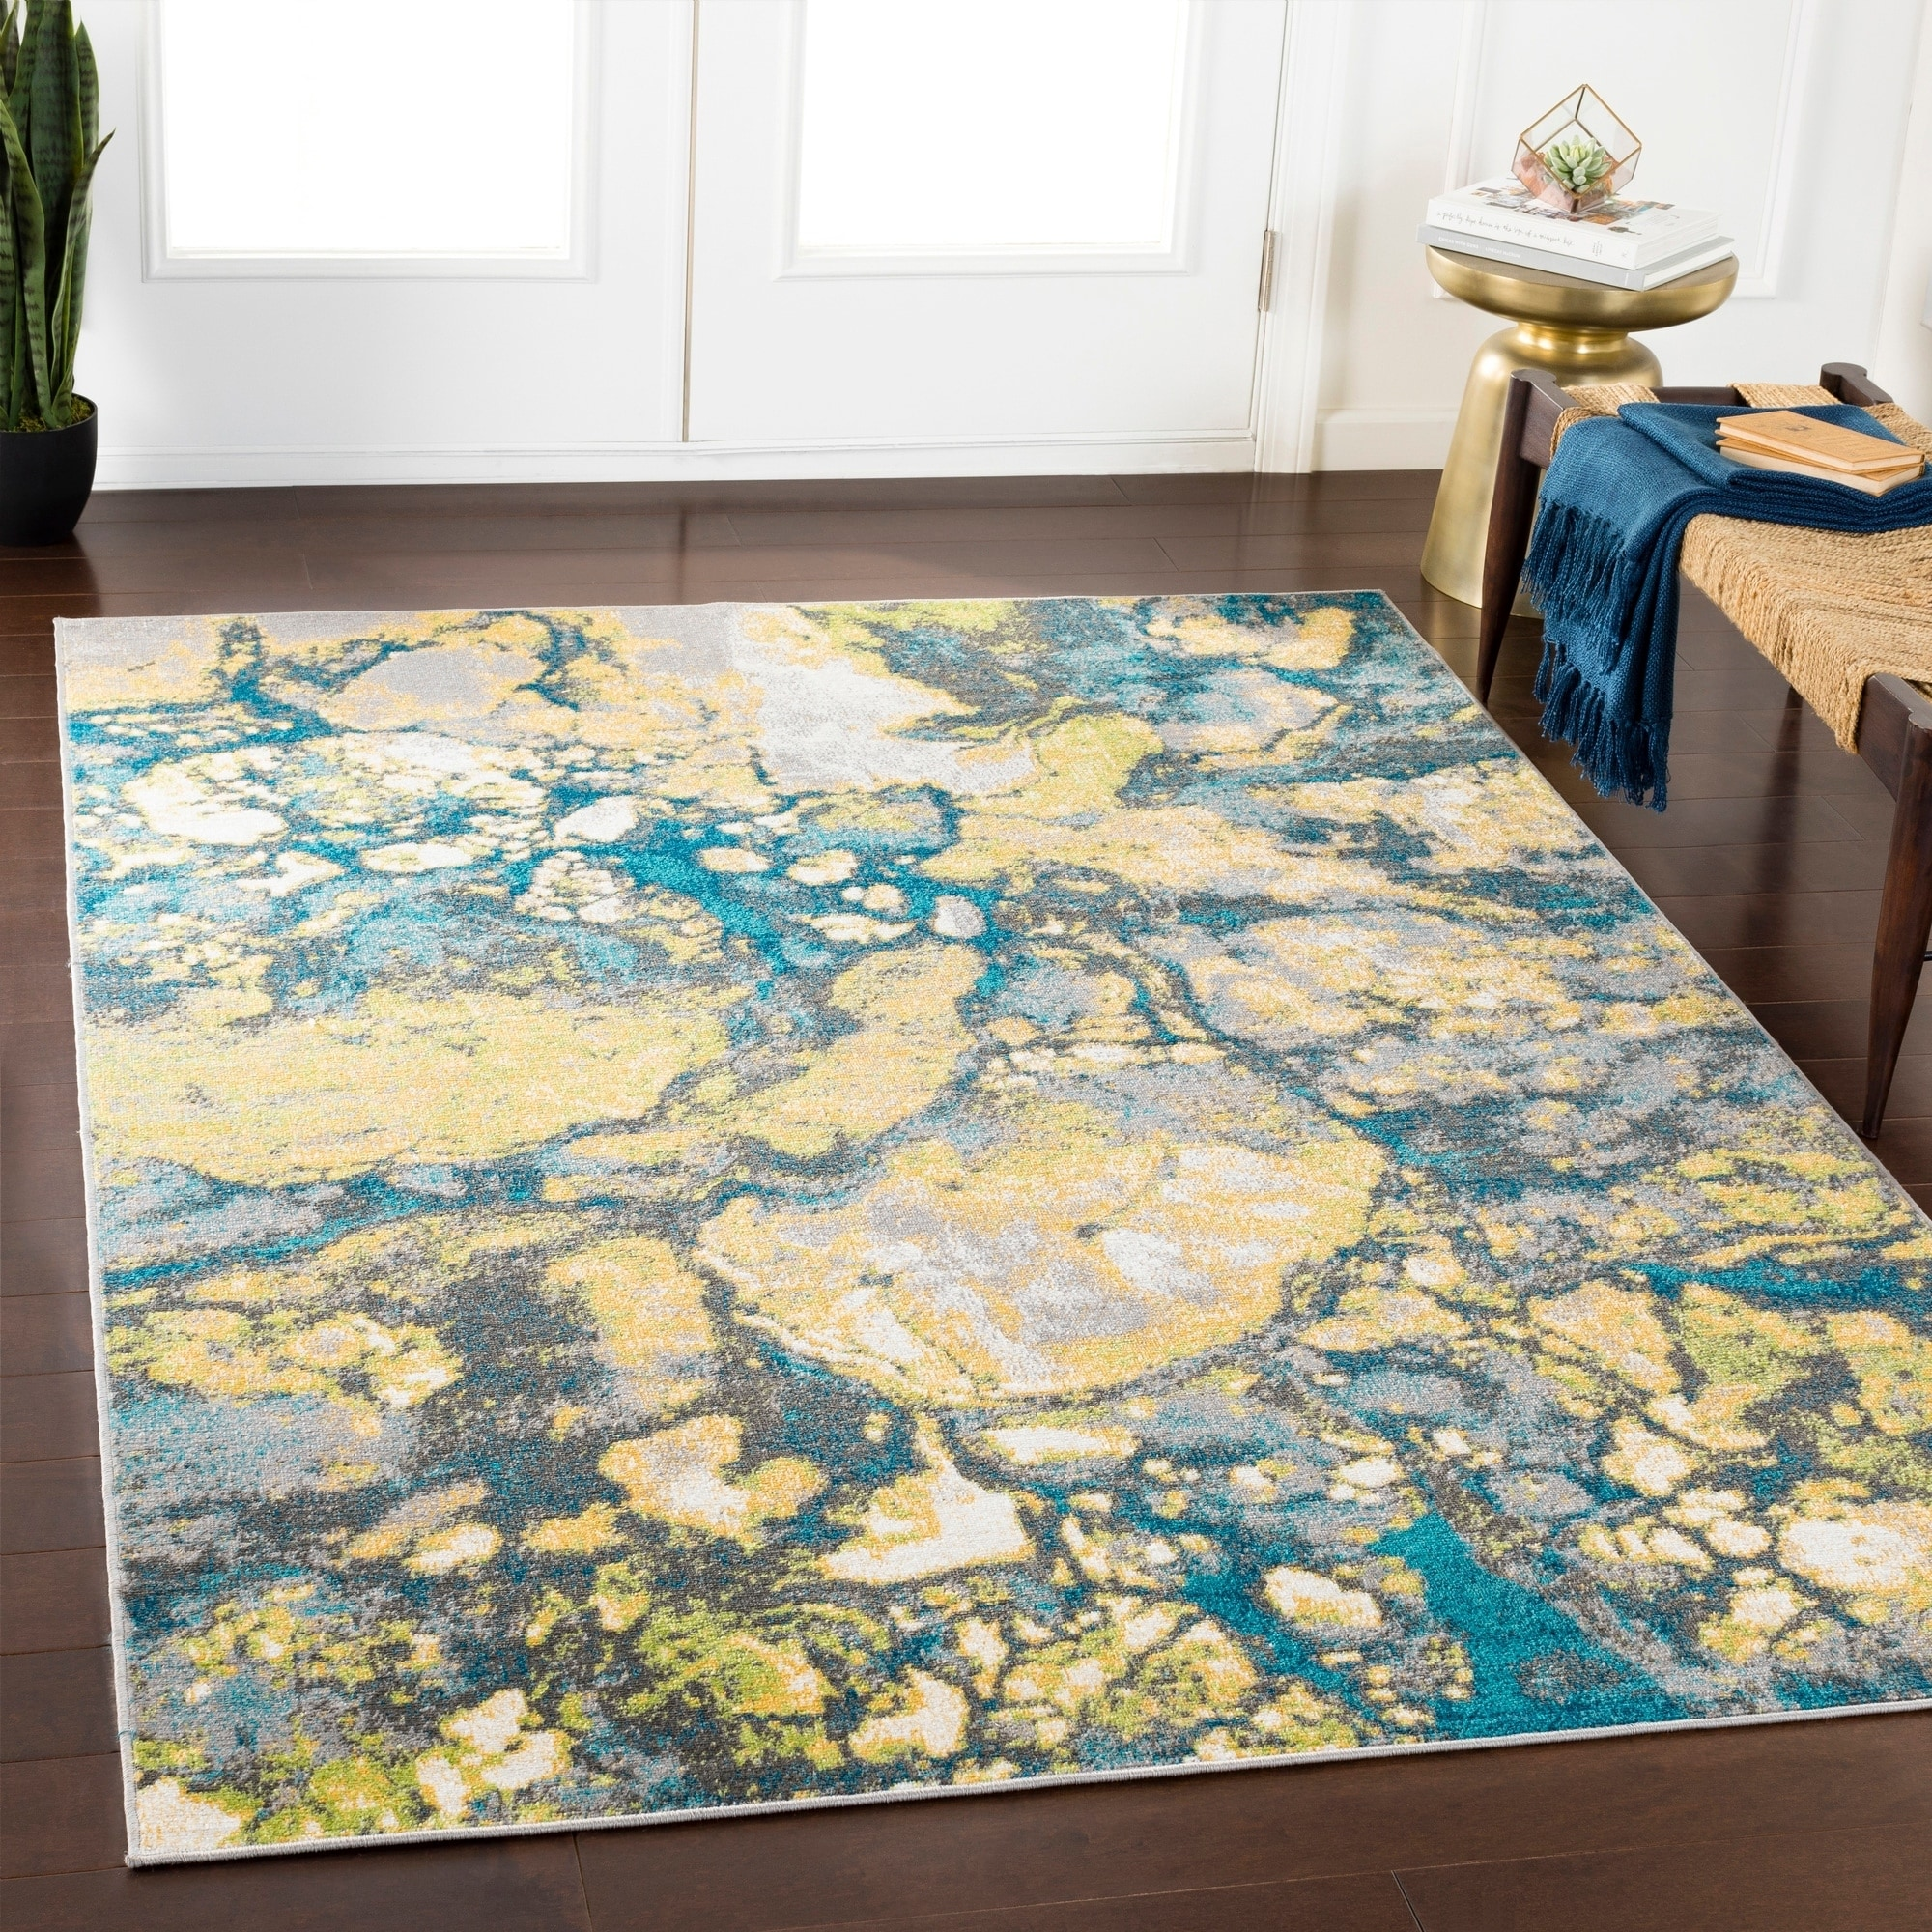 Andi Teal Lime Abstract Area Rug 5 3 X 7 6 On Free Shipping Today 21279264